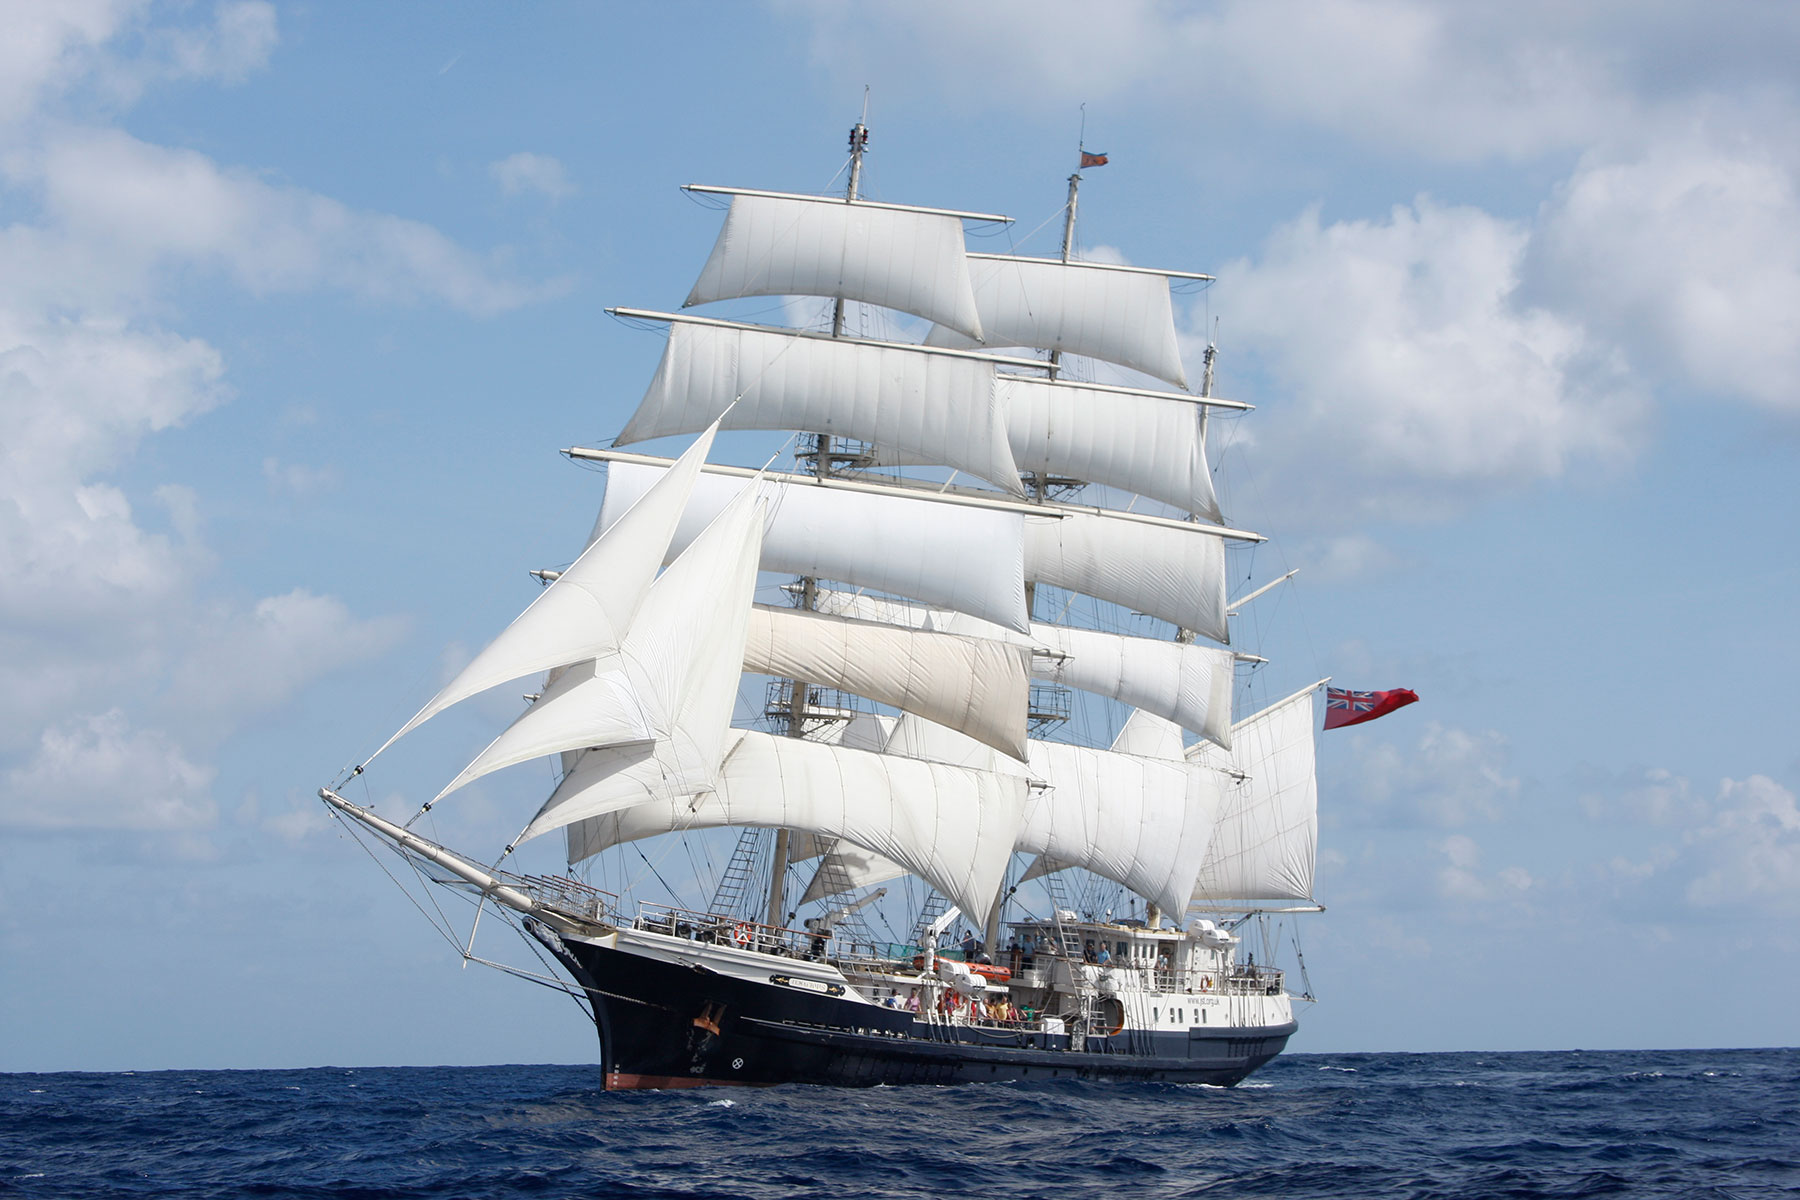 Cloud Support Jubilee Sailing Trust - Tenacious Project